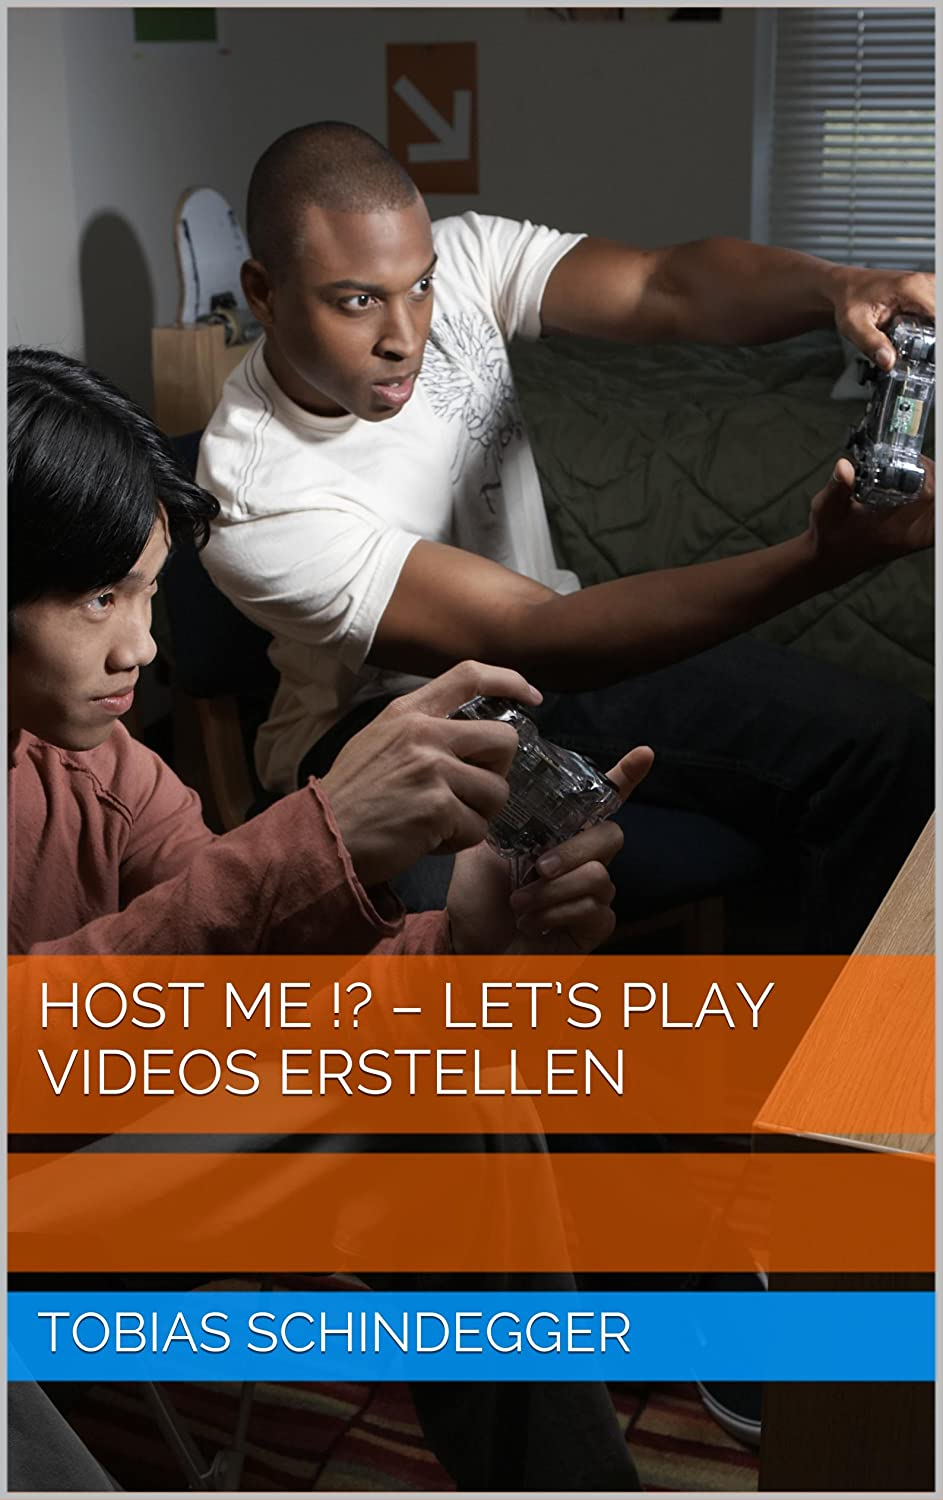 Host me !? - Let's Play Videos erstellen